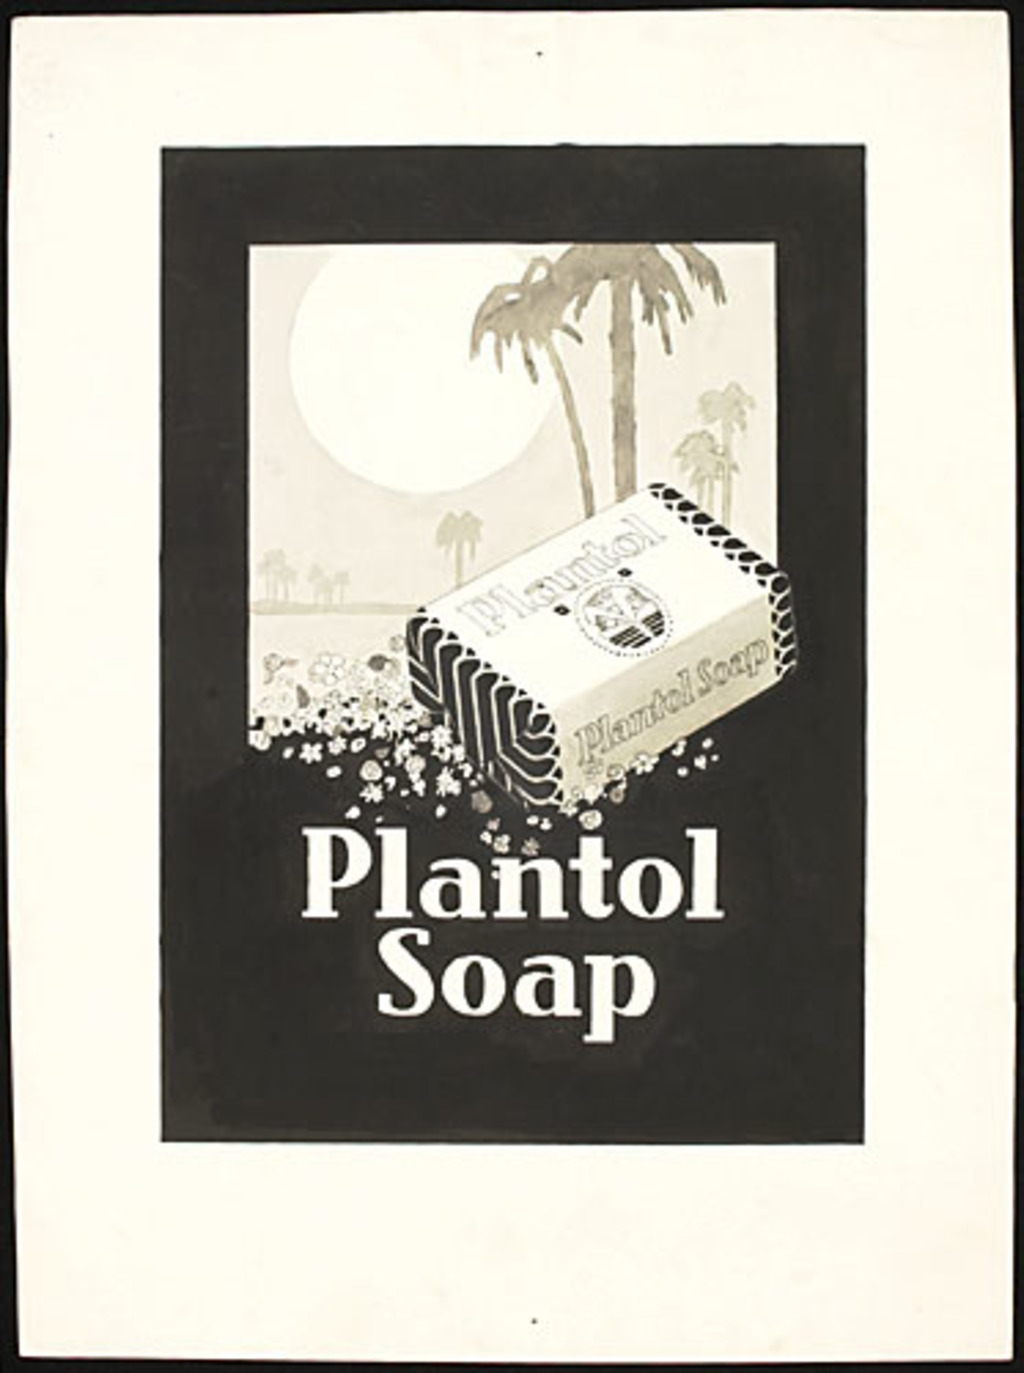 Illustration pour l'affiche « Plantol Soap »